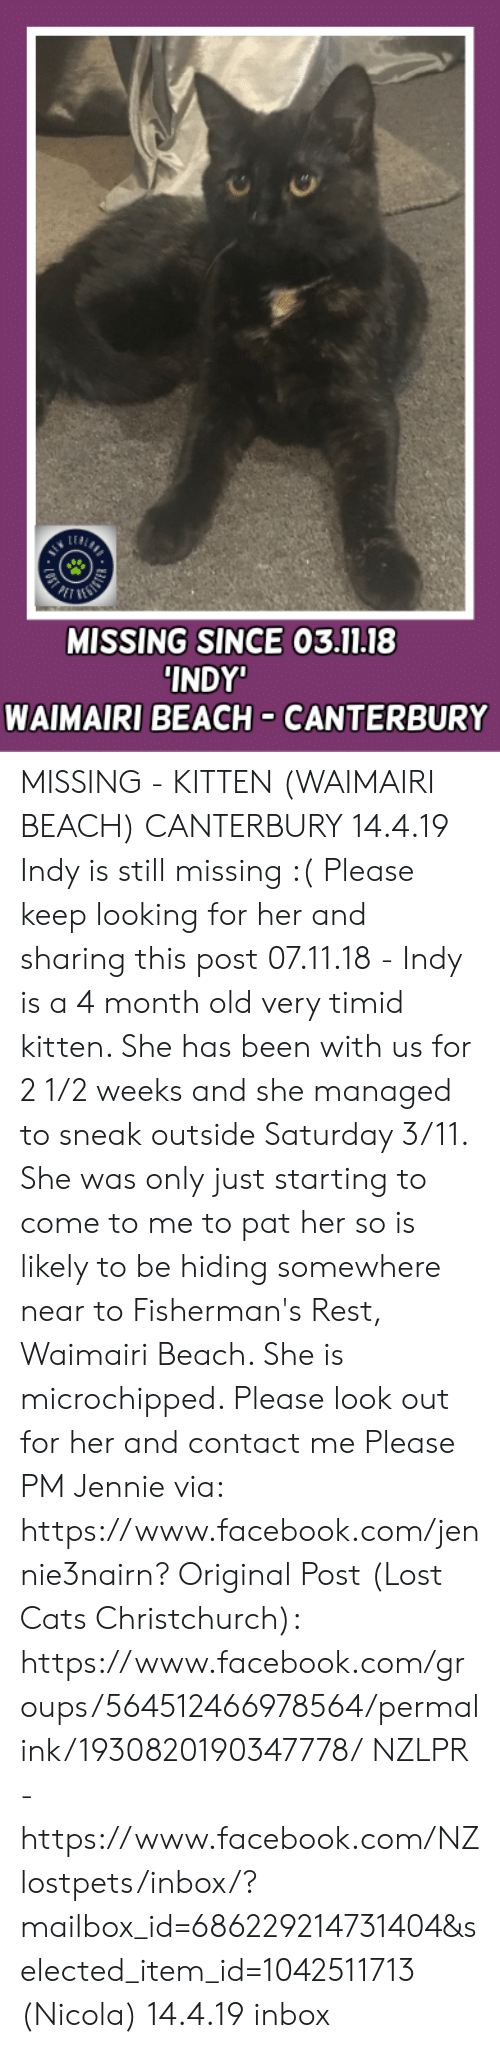 Cats, Facebook, and Memes: LEA  MISSING SINCE 03.11.18  INDY  WAIMAIRI BEACH CANTERBURY MISSING - KITTEN (WAIMAIRI BEACH) CANTERBURY  14.4.19 Indy is still missing :(  Please keep looking for her and sharing this post 07.11.18 - Indy is a 4 month old very timid kitten. She has been with us for 2 1/2 weeks and she managed to sneak outside Saturday 3/11. She was only just starting to come to me to pat her so is likely to be hiding somewhere near to Fisherman's Rest, Waimairi Beach. She is microchipped. Please look out for her and contact me  Please PM Jennie via: https://www.facebook.com/jennie3nairn?  Original Post (Lost Cats Christchurch): https://www.facebook.com/groups/564512466978564/permalink/1930820190347778/  NZLPR - https://www.facebook.com/NZlostpets/inbox/?mailbox_id=686229214731404&selected_item_id=1042511713    (Nicola)  14.4.19 inbox